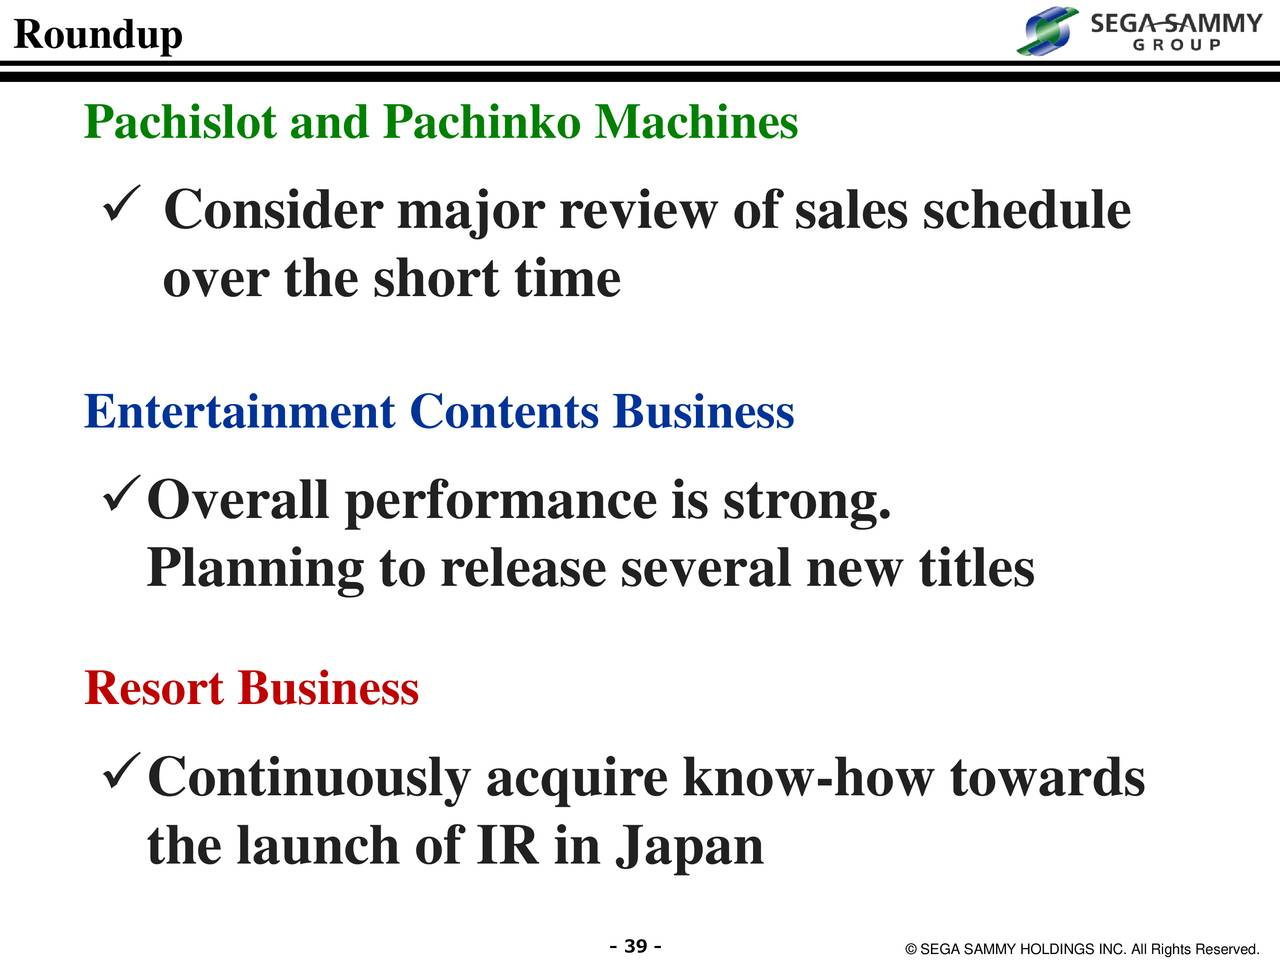 sega sammy business analysis The statistic presents the net sales of sega sammy holdings from fiscal years 2015 to 2017, broken down by segment in the last fiscal year that ended march 31, 2017, sega sammy generated 1482 billion japanese yen in revenue from its pachislot and pachinko business segment.